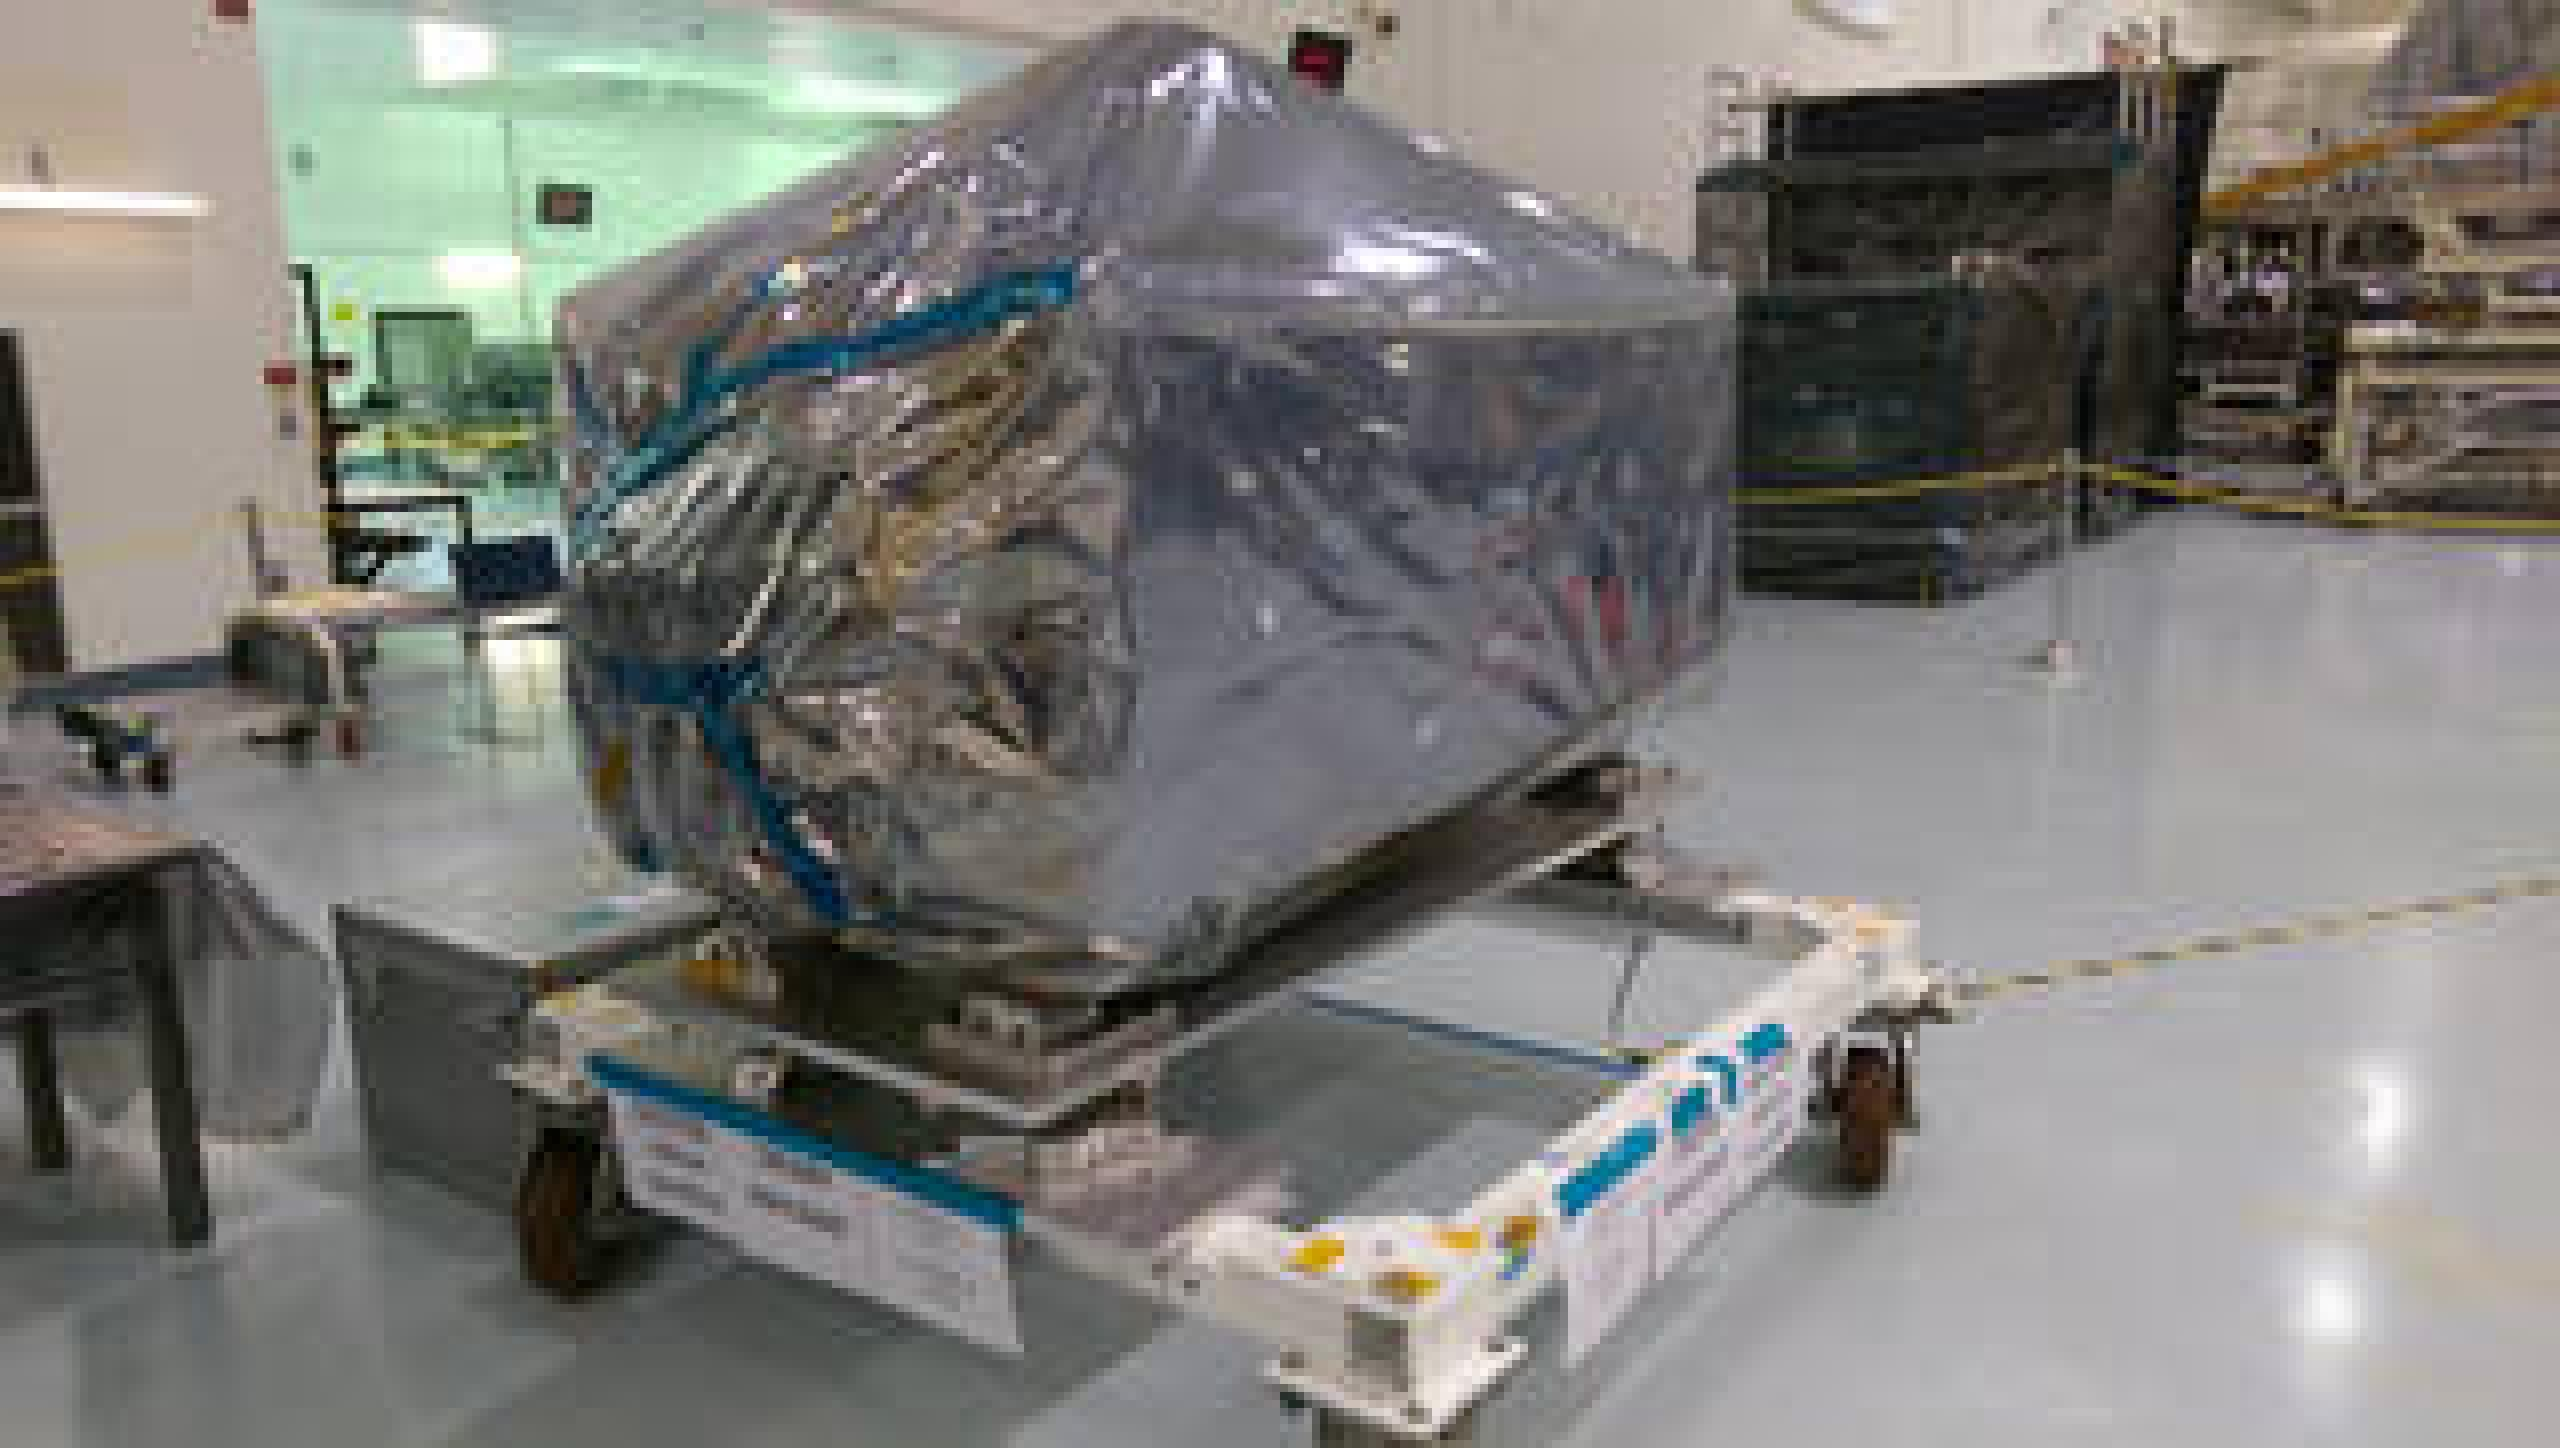 The ISS-CREAM payload was delivered to NASA's Kennedy Space Center in August 2015. The experiment is shown wrapped in plastic layers used to protect its sensitive electronics during shipment.